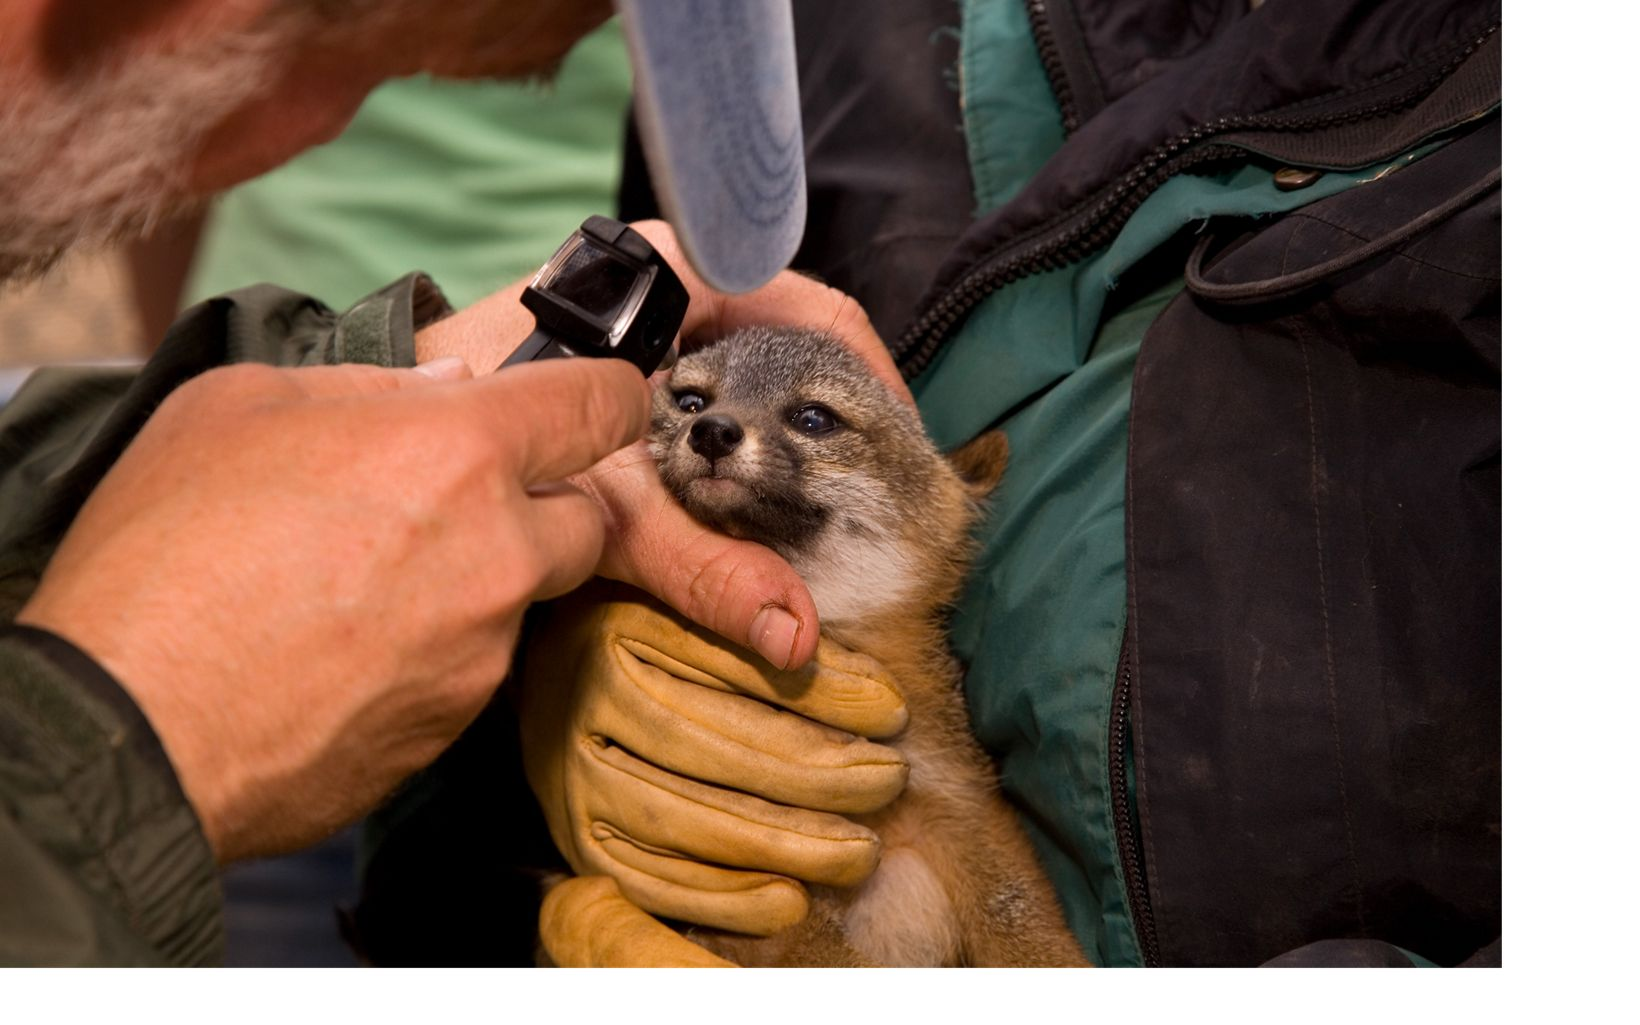 vet using a tool to look into a fox's eye